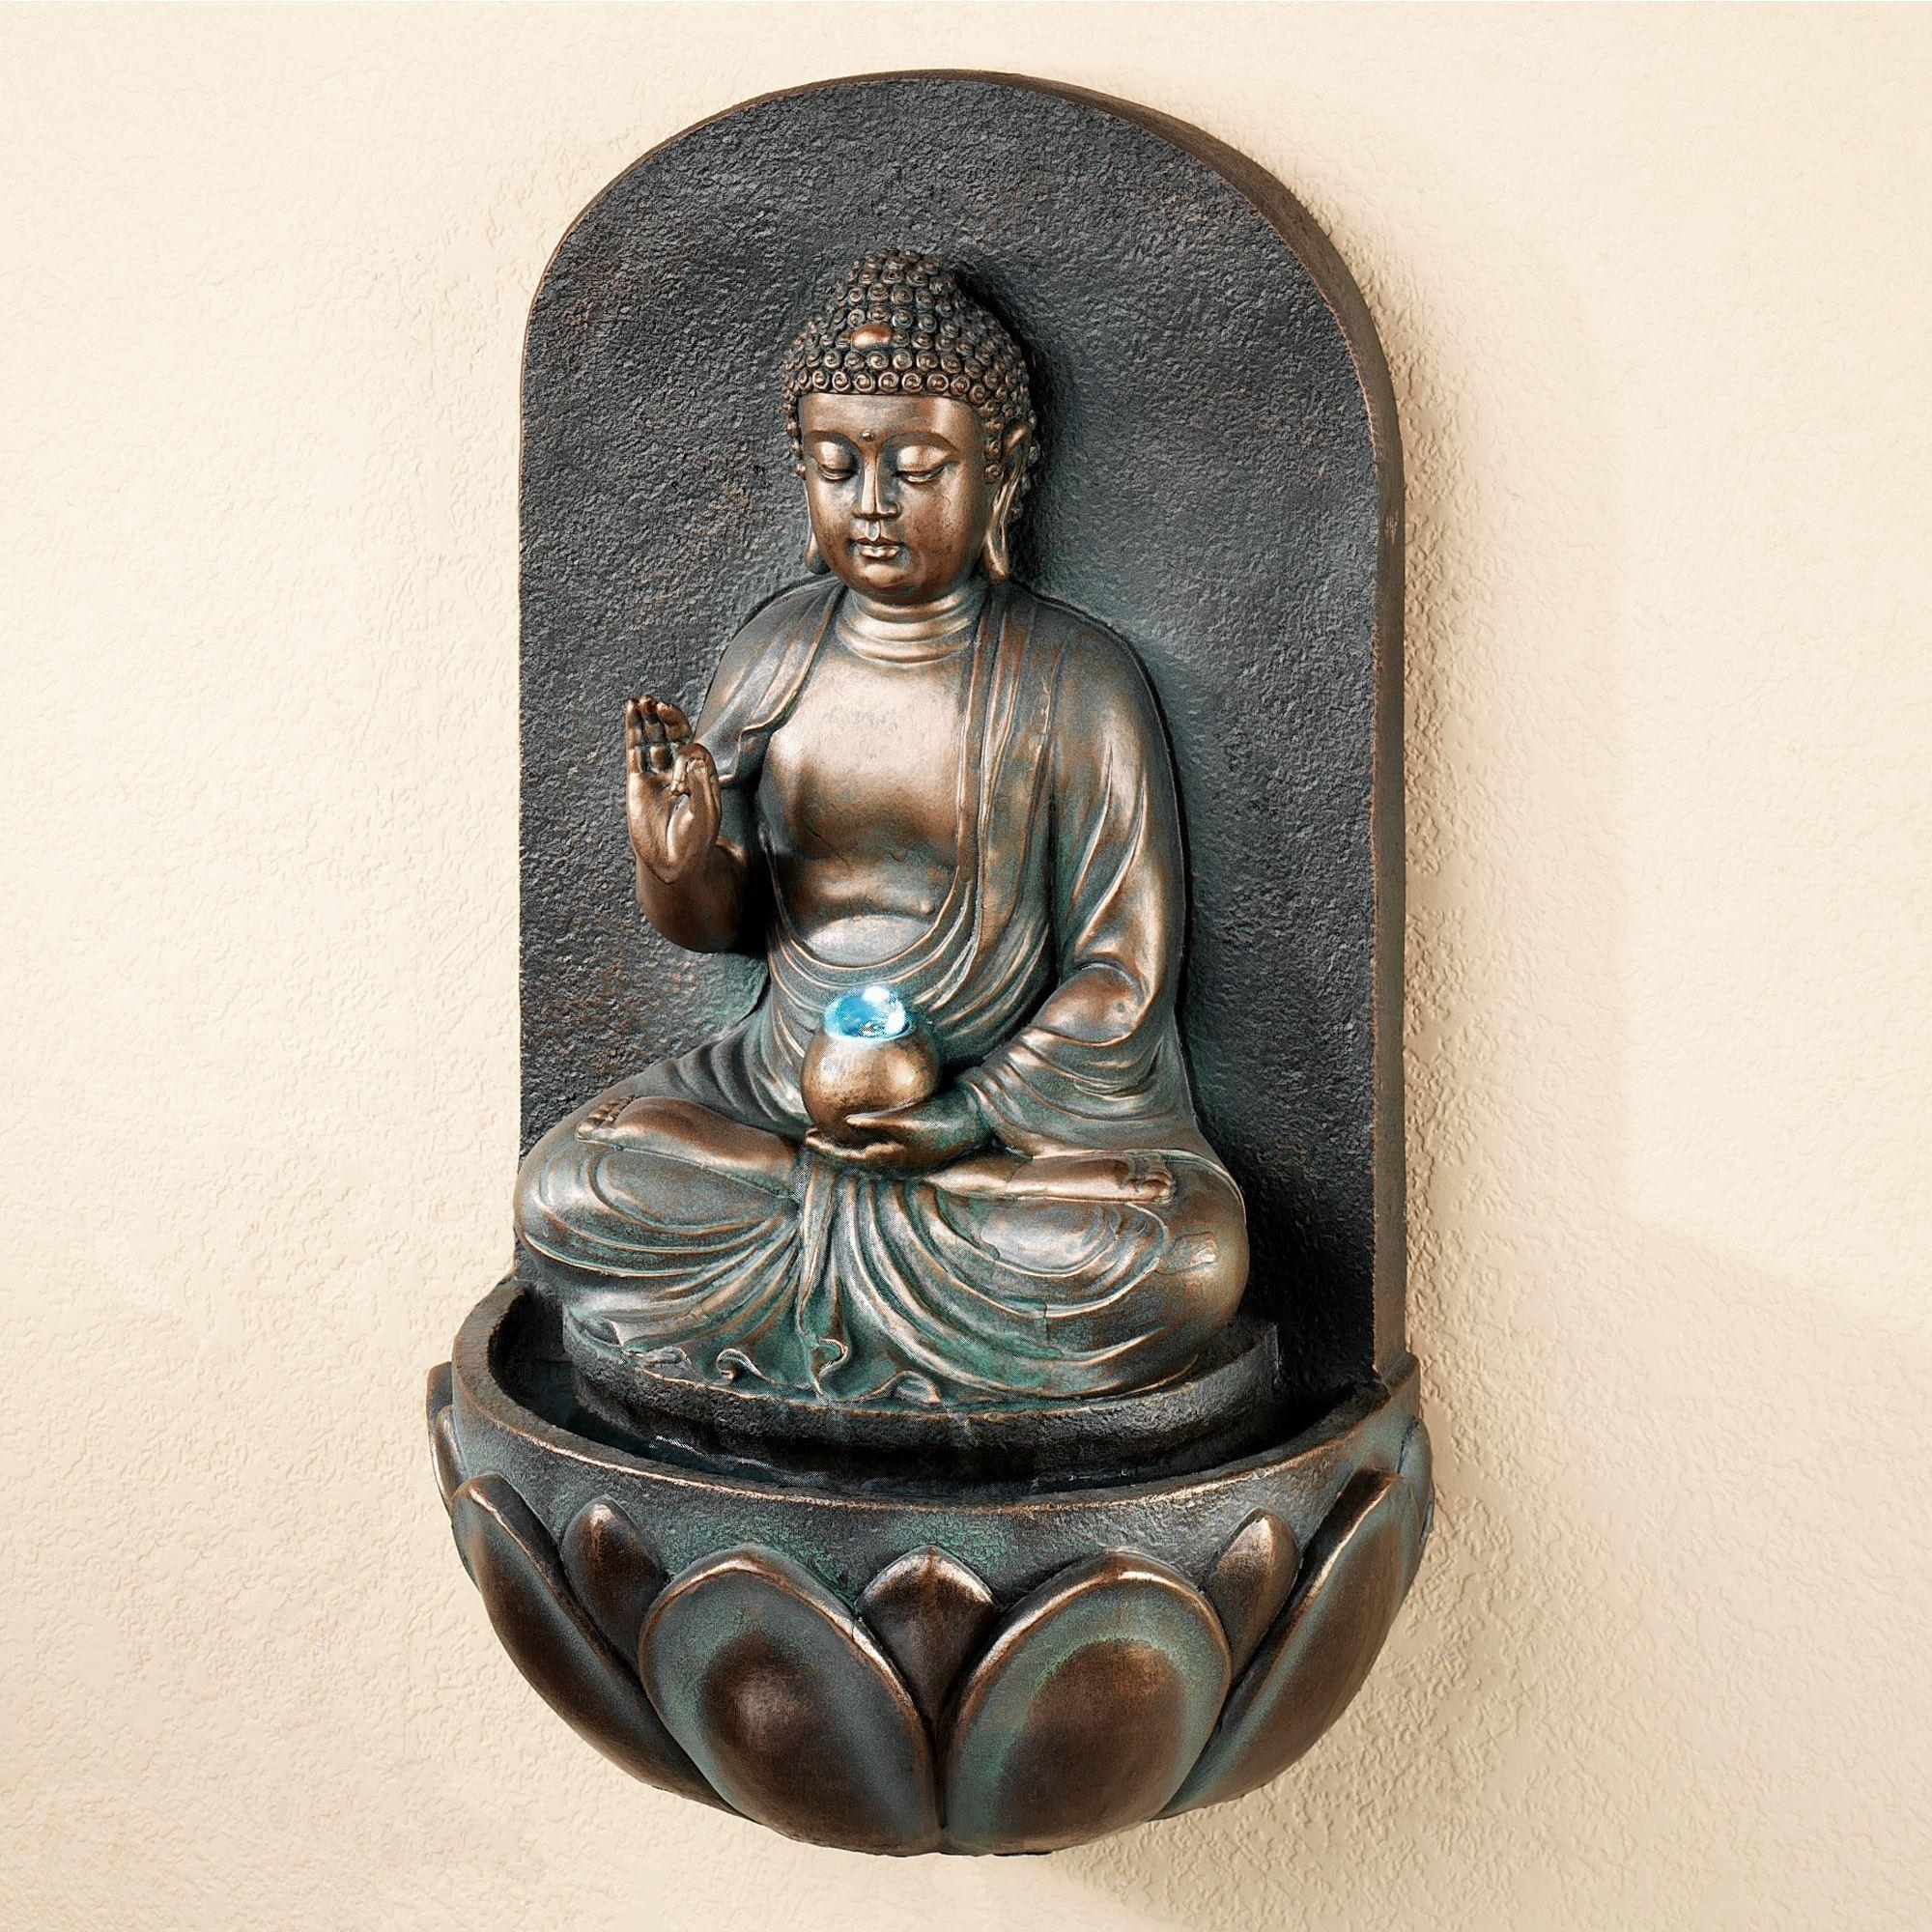 Reflecting Buddha Indoor Outdoor Wall Water Fountain Intended For Buddha Outdoor Wall Art (View 14 of 20)